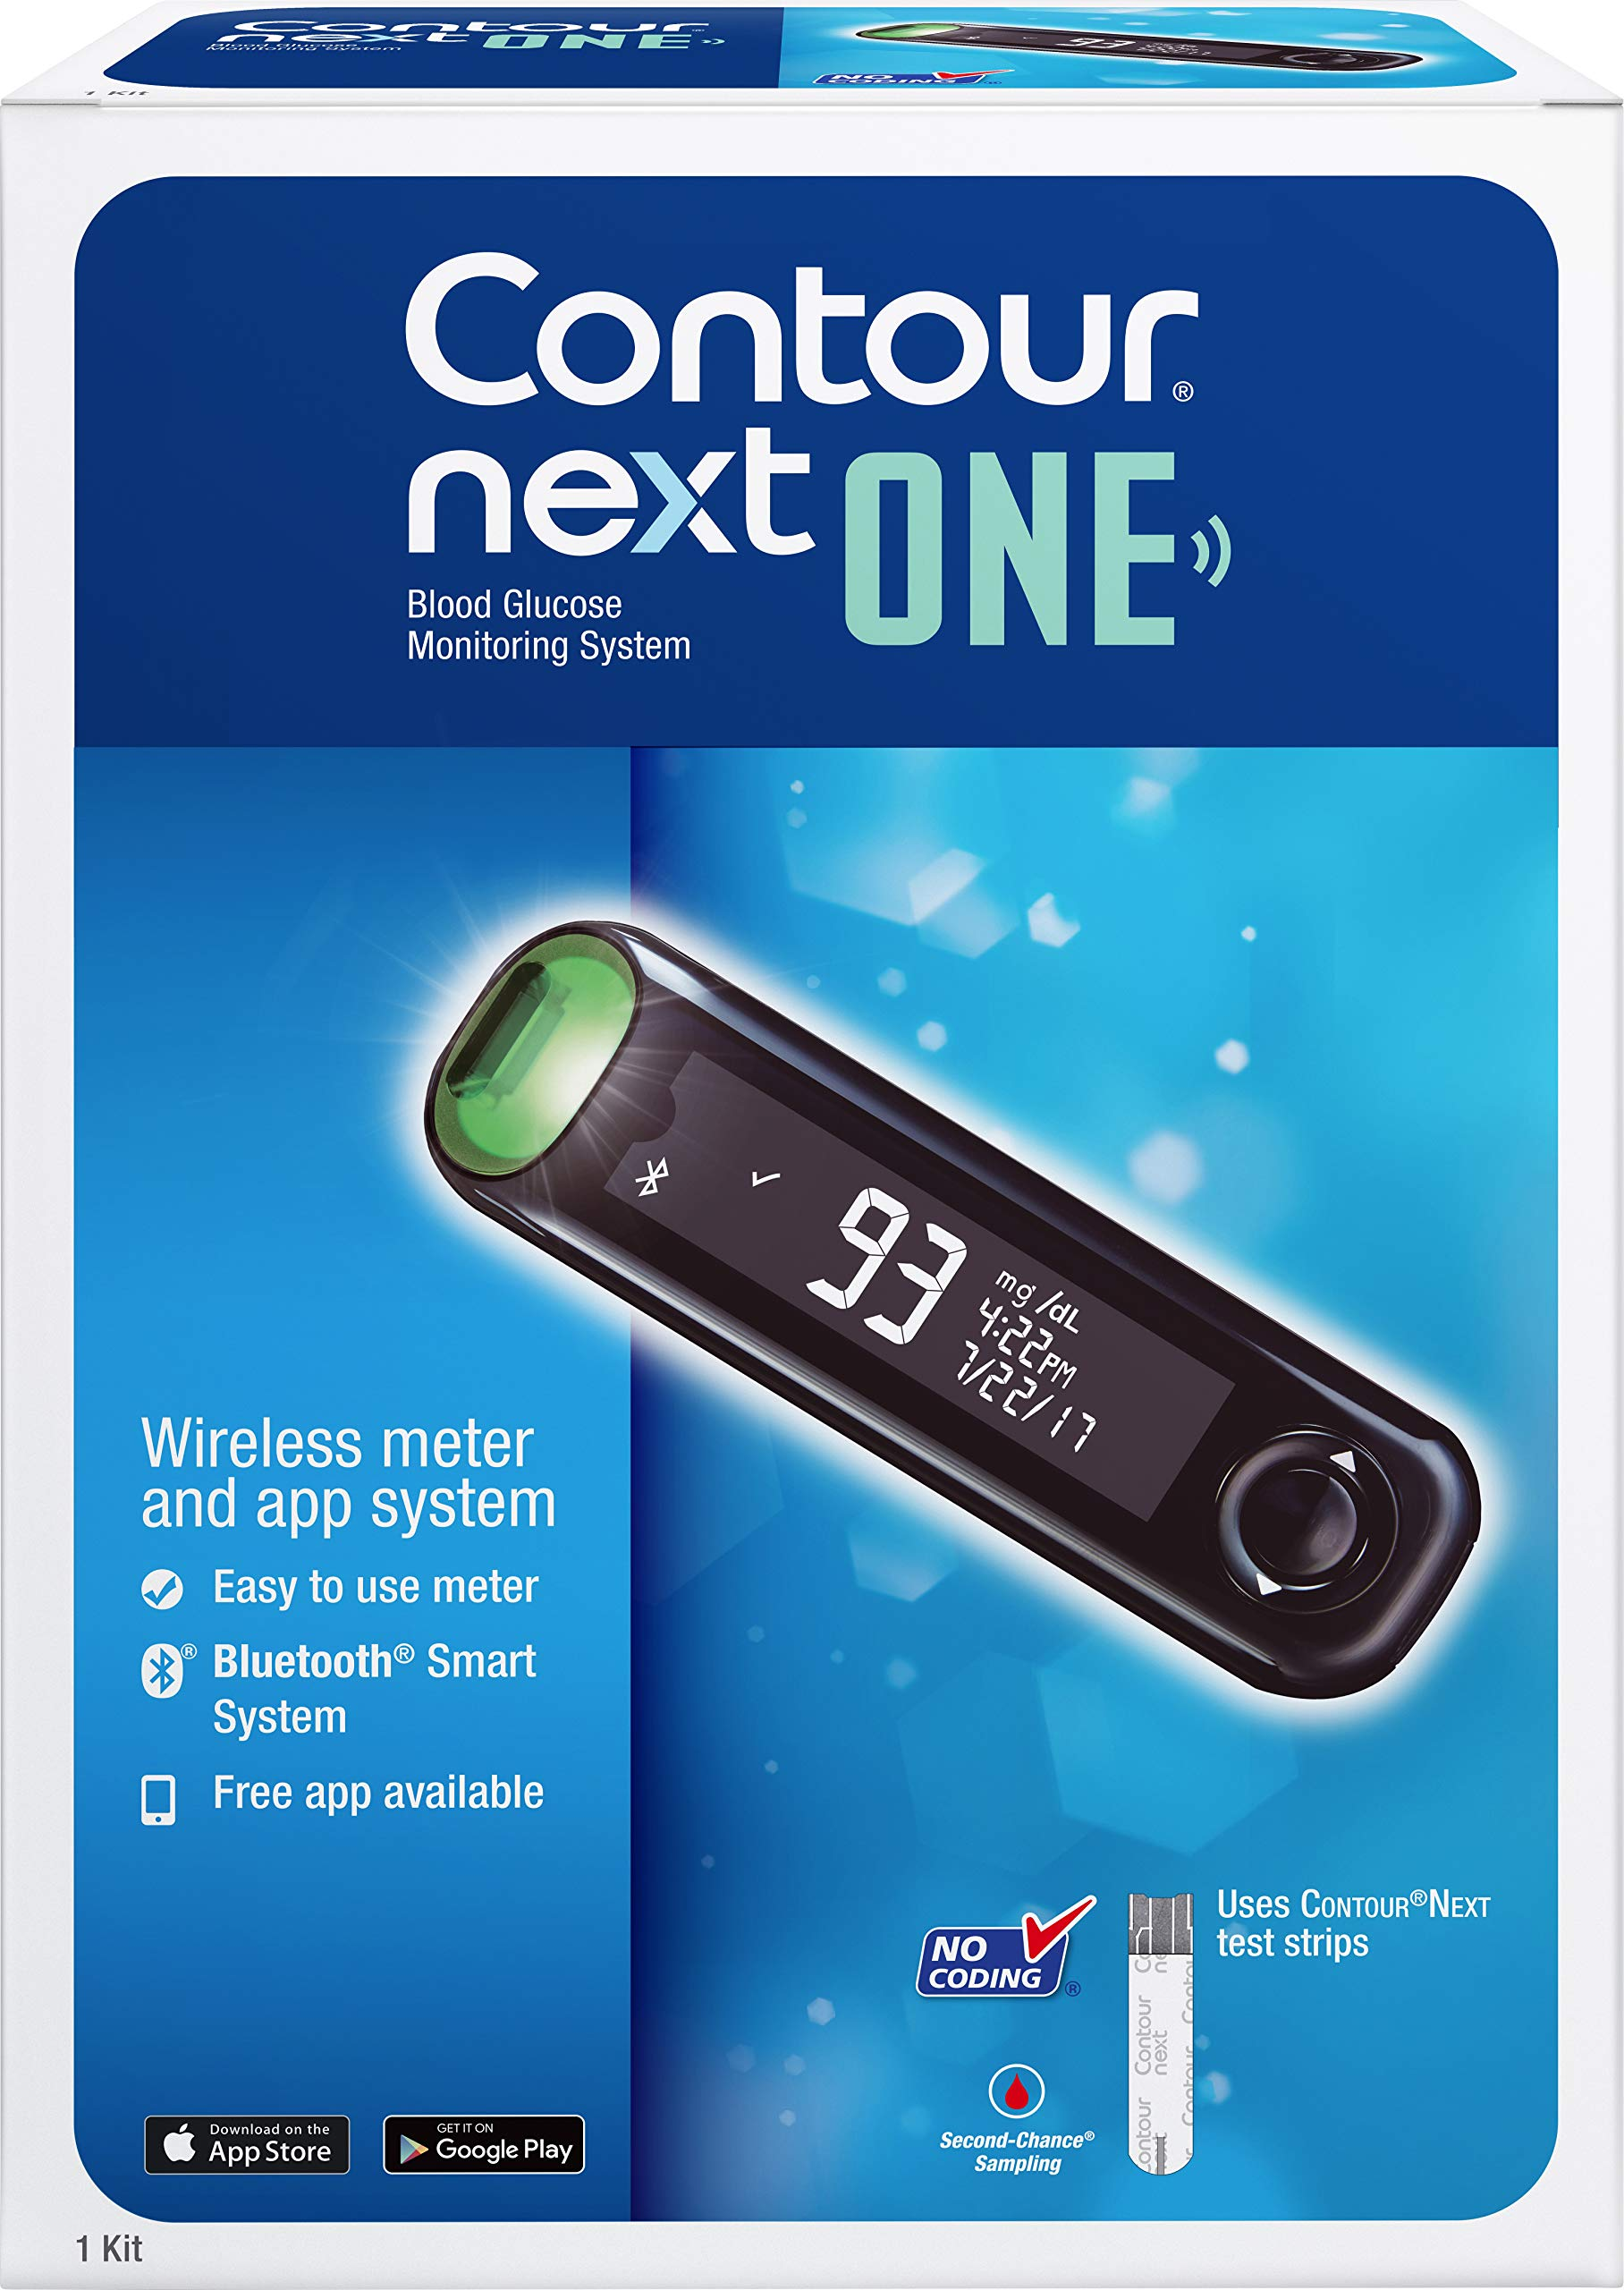 The CONTOUR NEXT ONE Blood Glucose Monitoring System